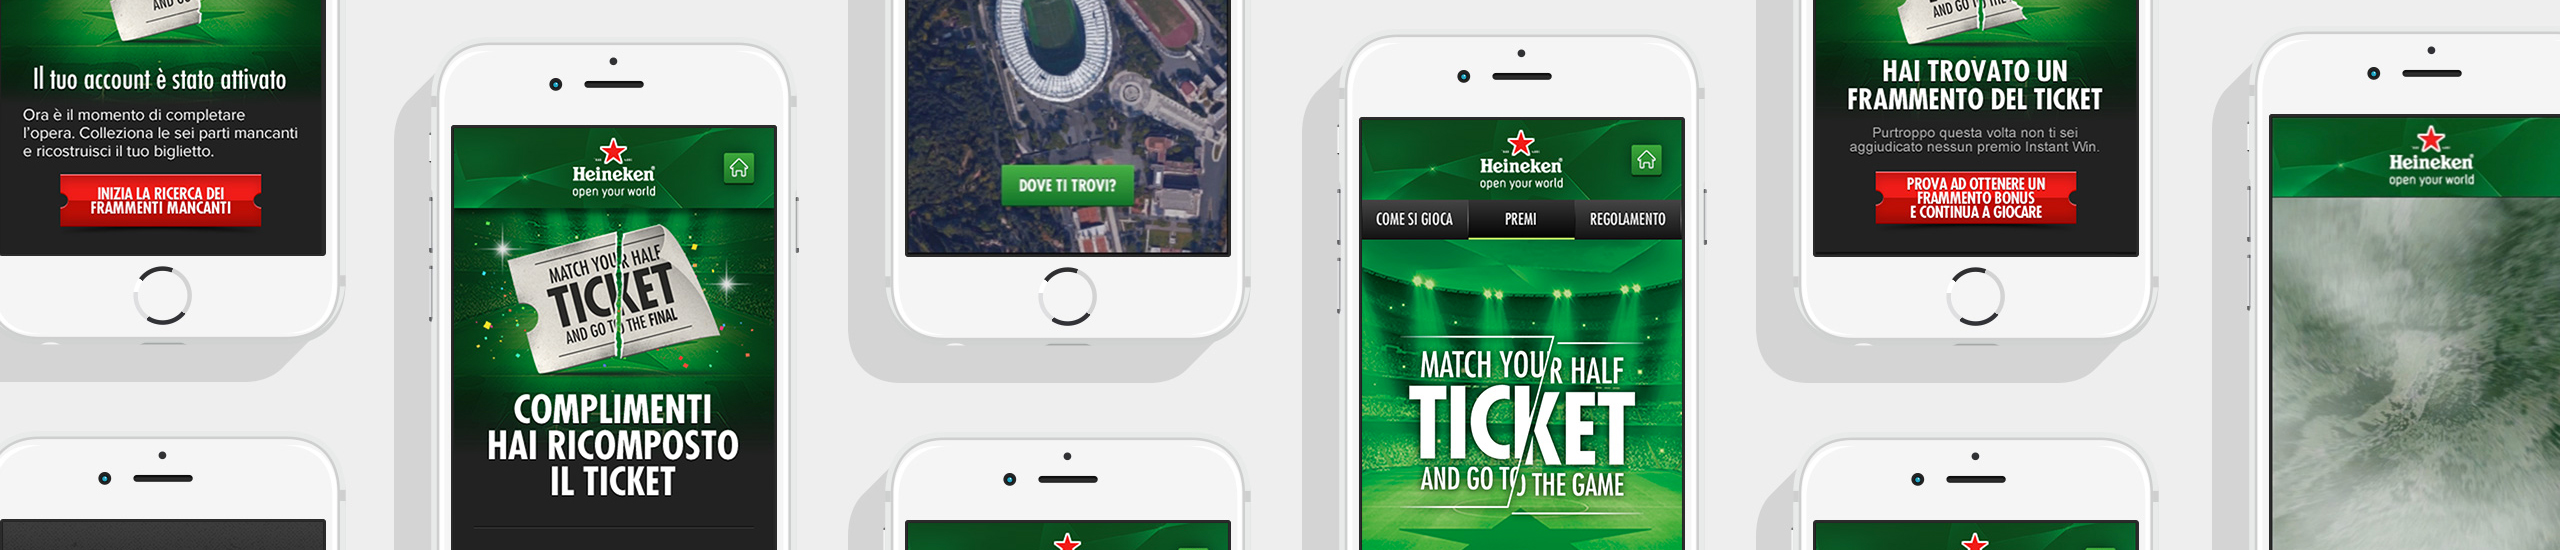 Heineken Match Your Half Ticket